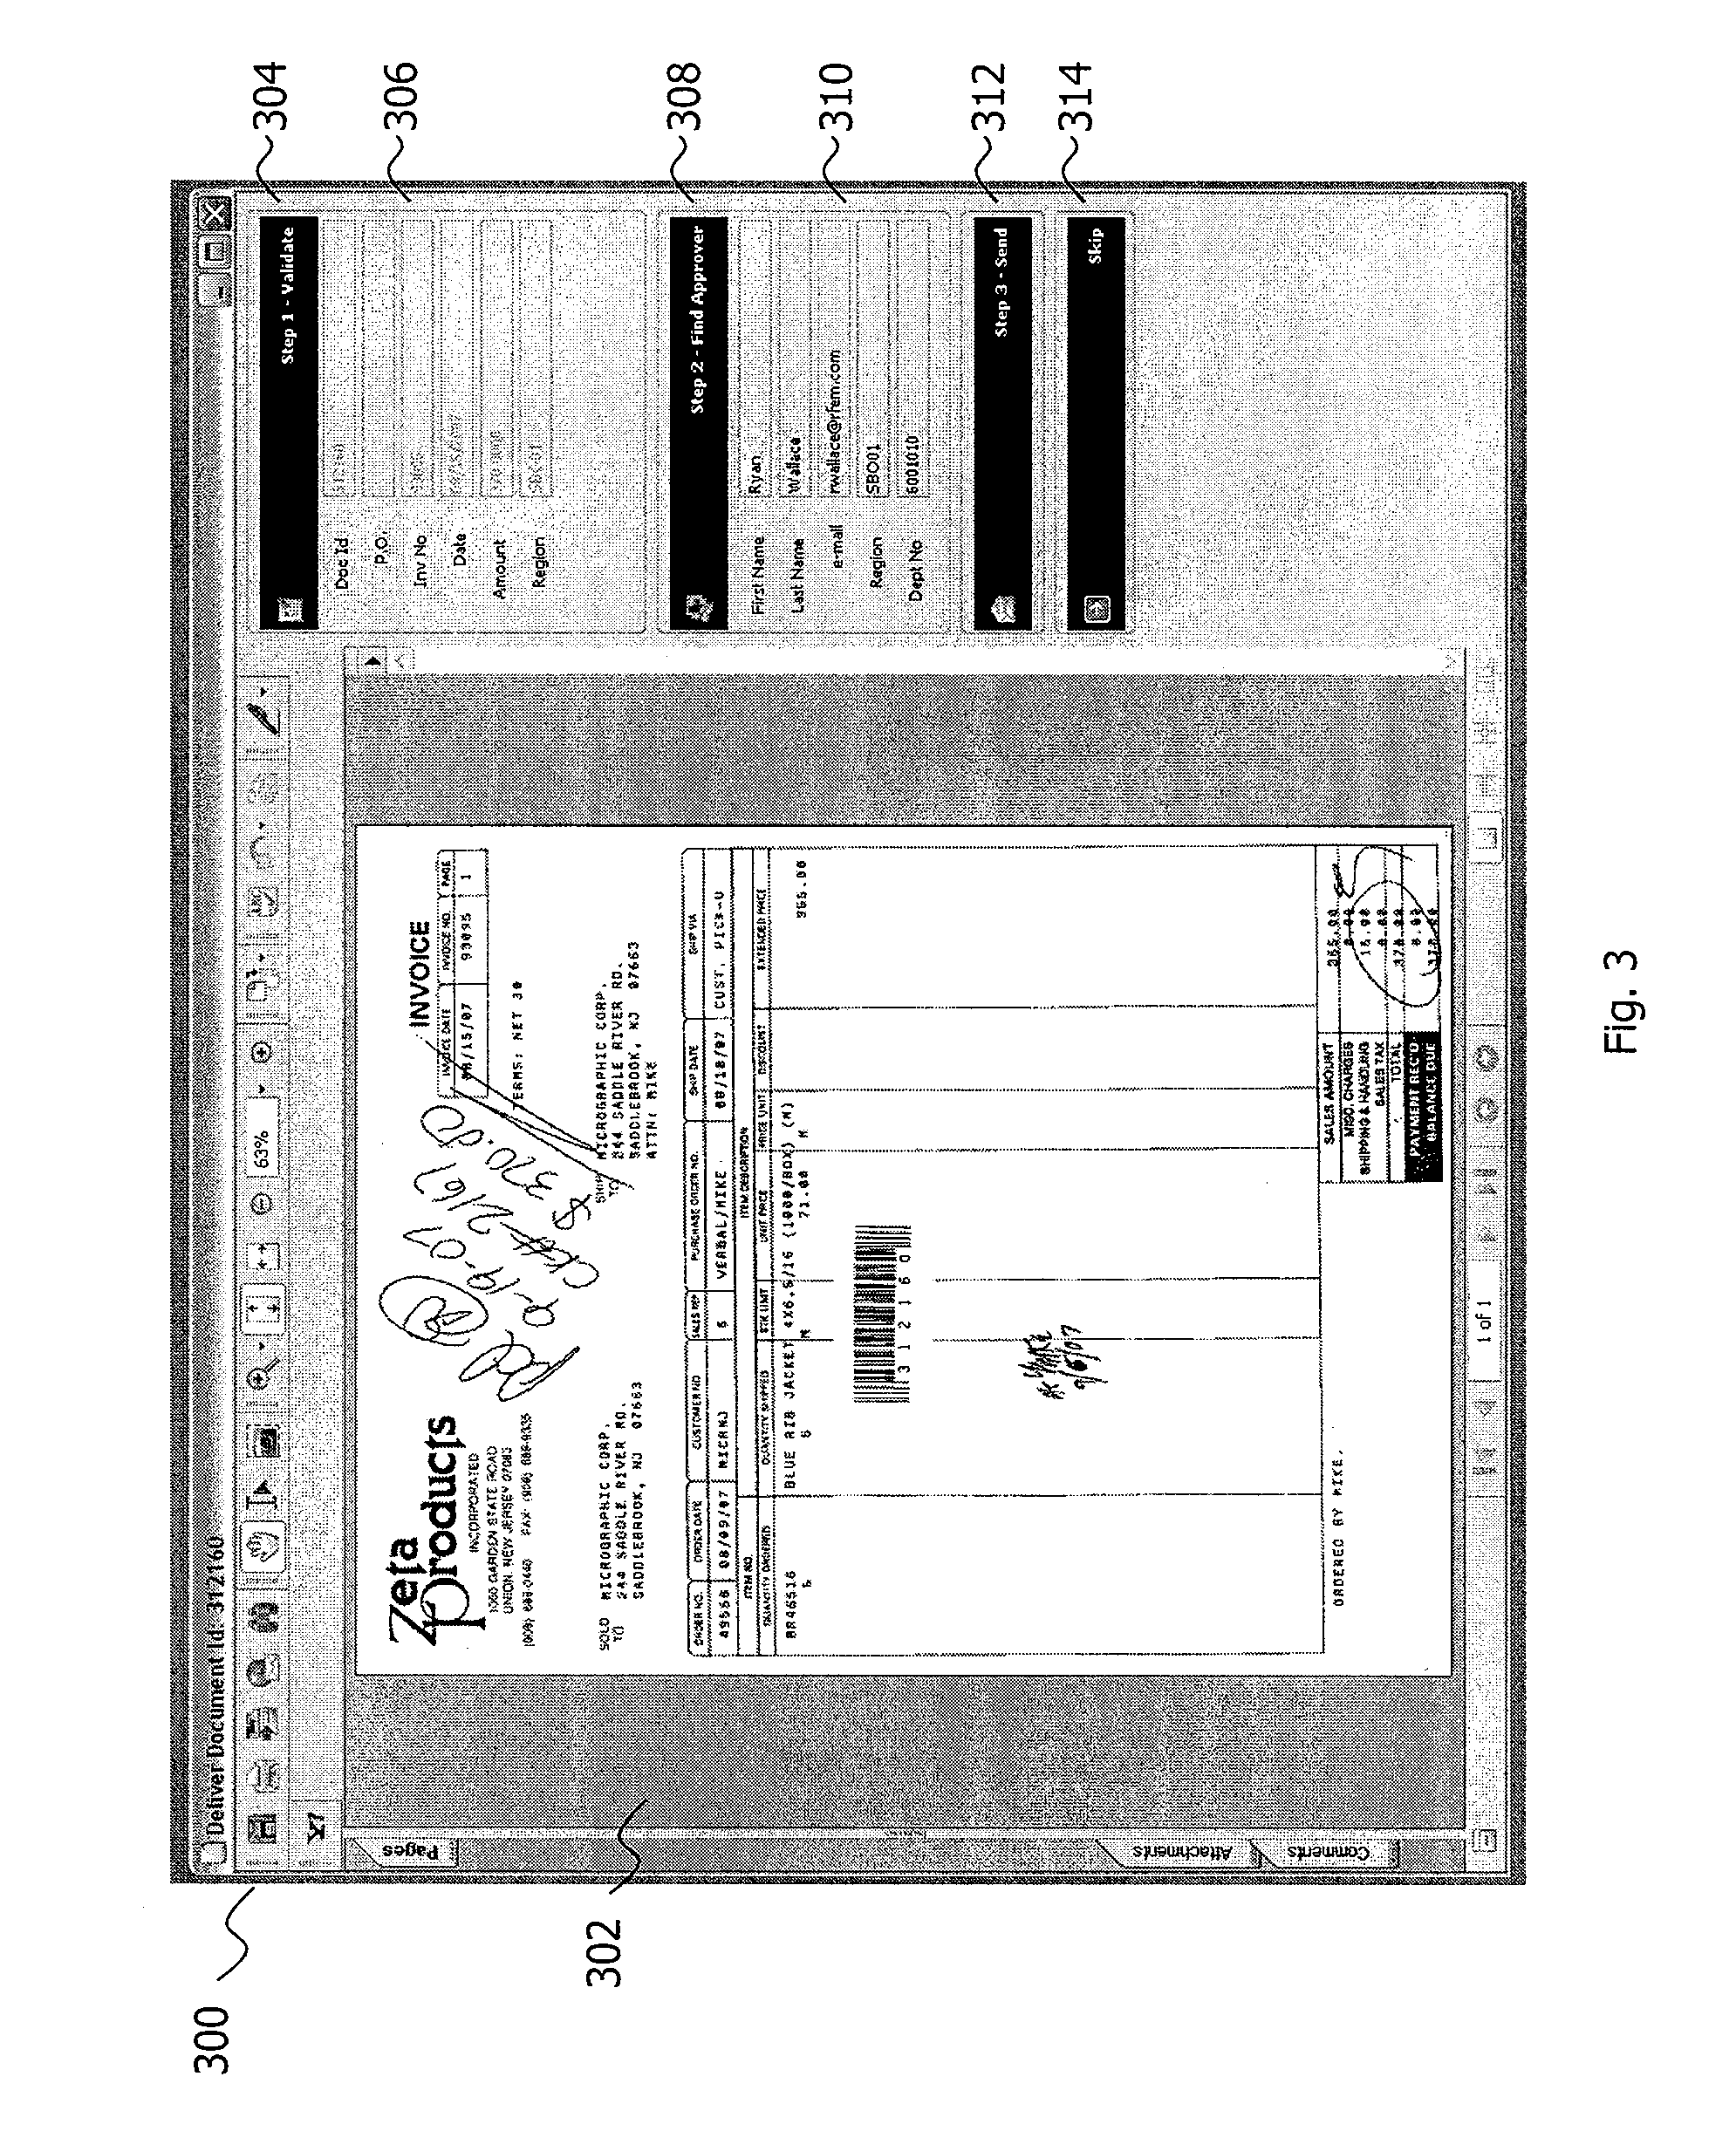 Cash Receipts Journal Example Word Patent Us  Automated Invoice Processing Software And  Tax Invoice Template Australia Word with Ms Invoice Template Patent Drawing Sample Ebay Invoice Pdf